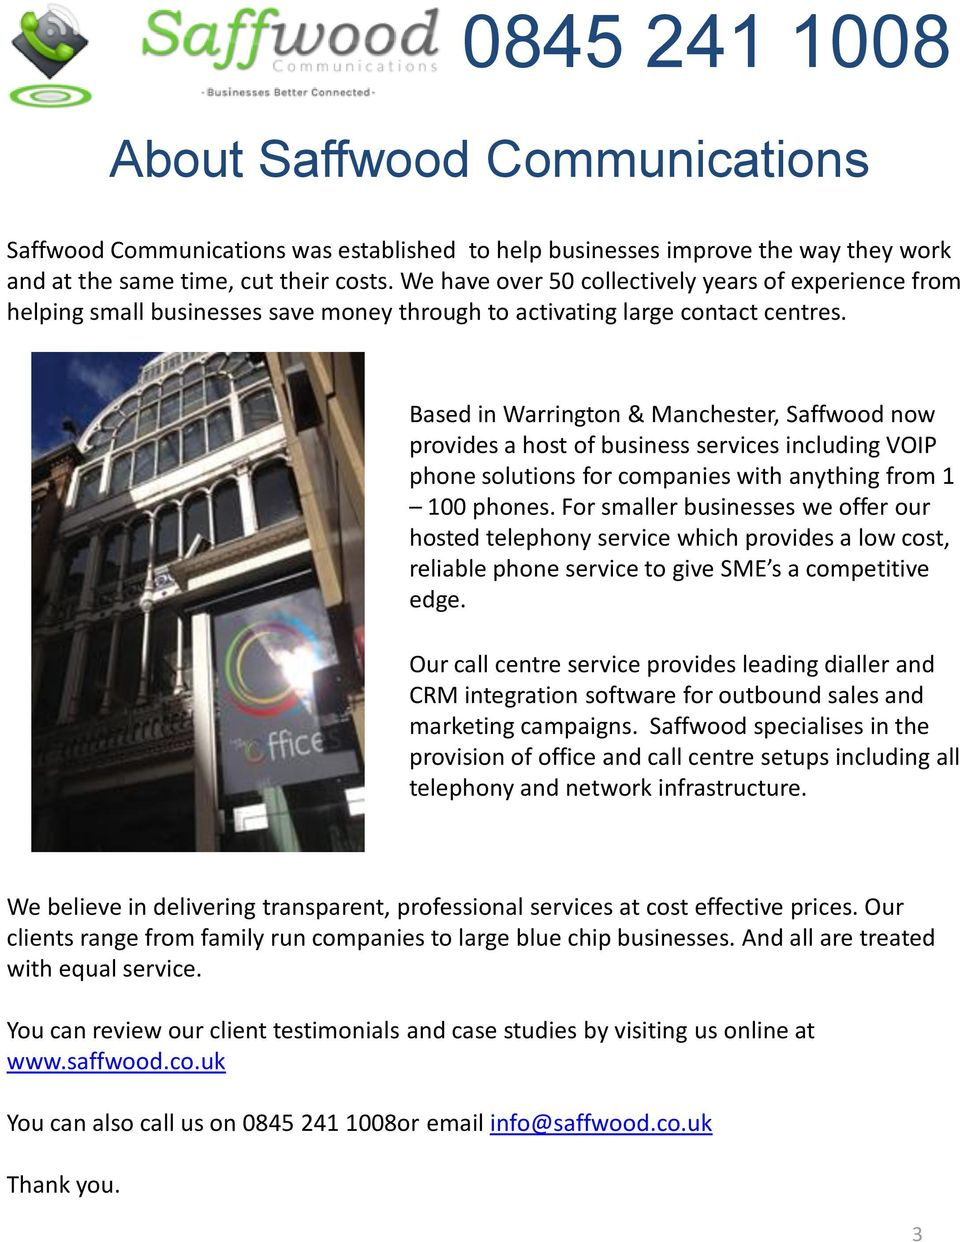 Based in Warrington & Manchester, Saffwood now provides a host of business services including VOIP phone solutions for companies with anything from 1 100 phones.